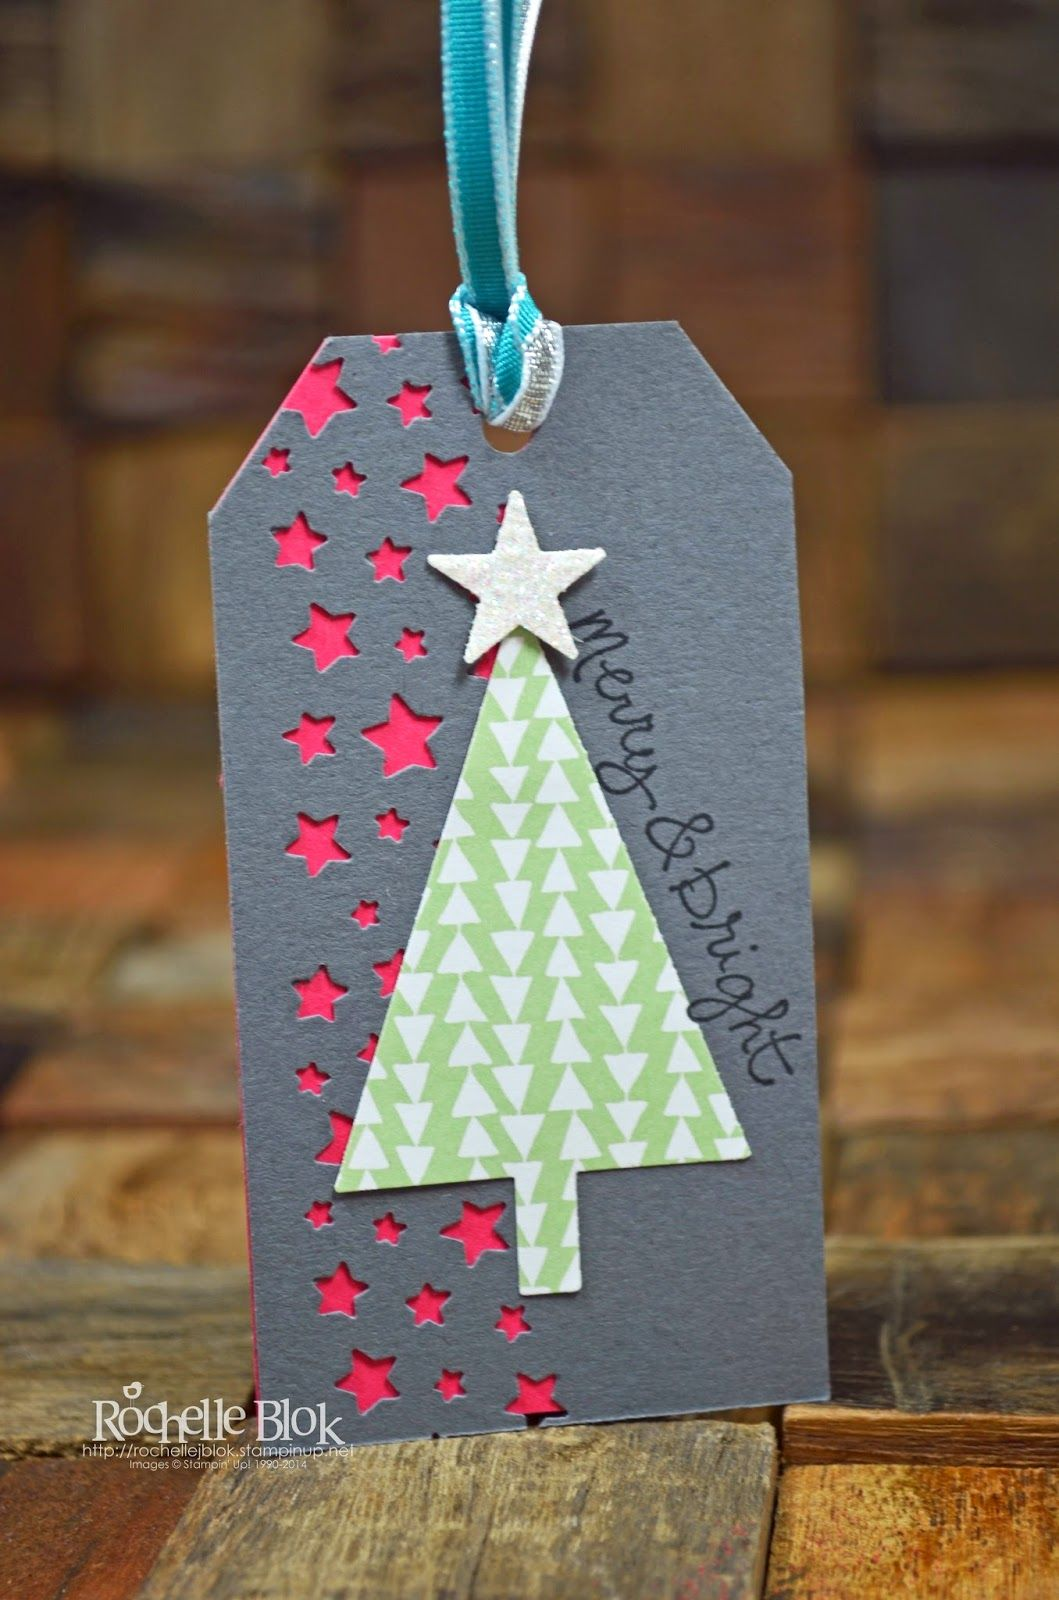 The stamping blok mystery box part by rochelle blok